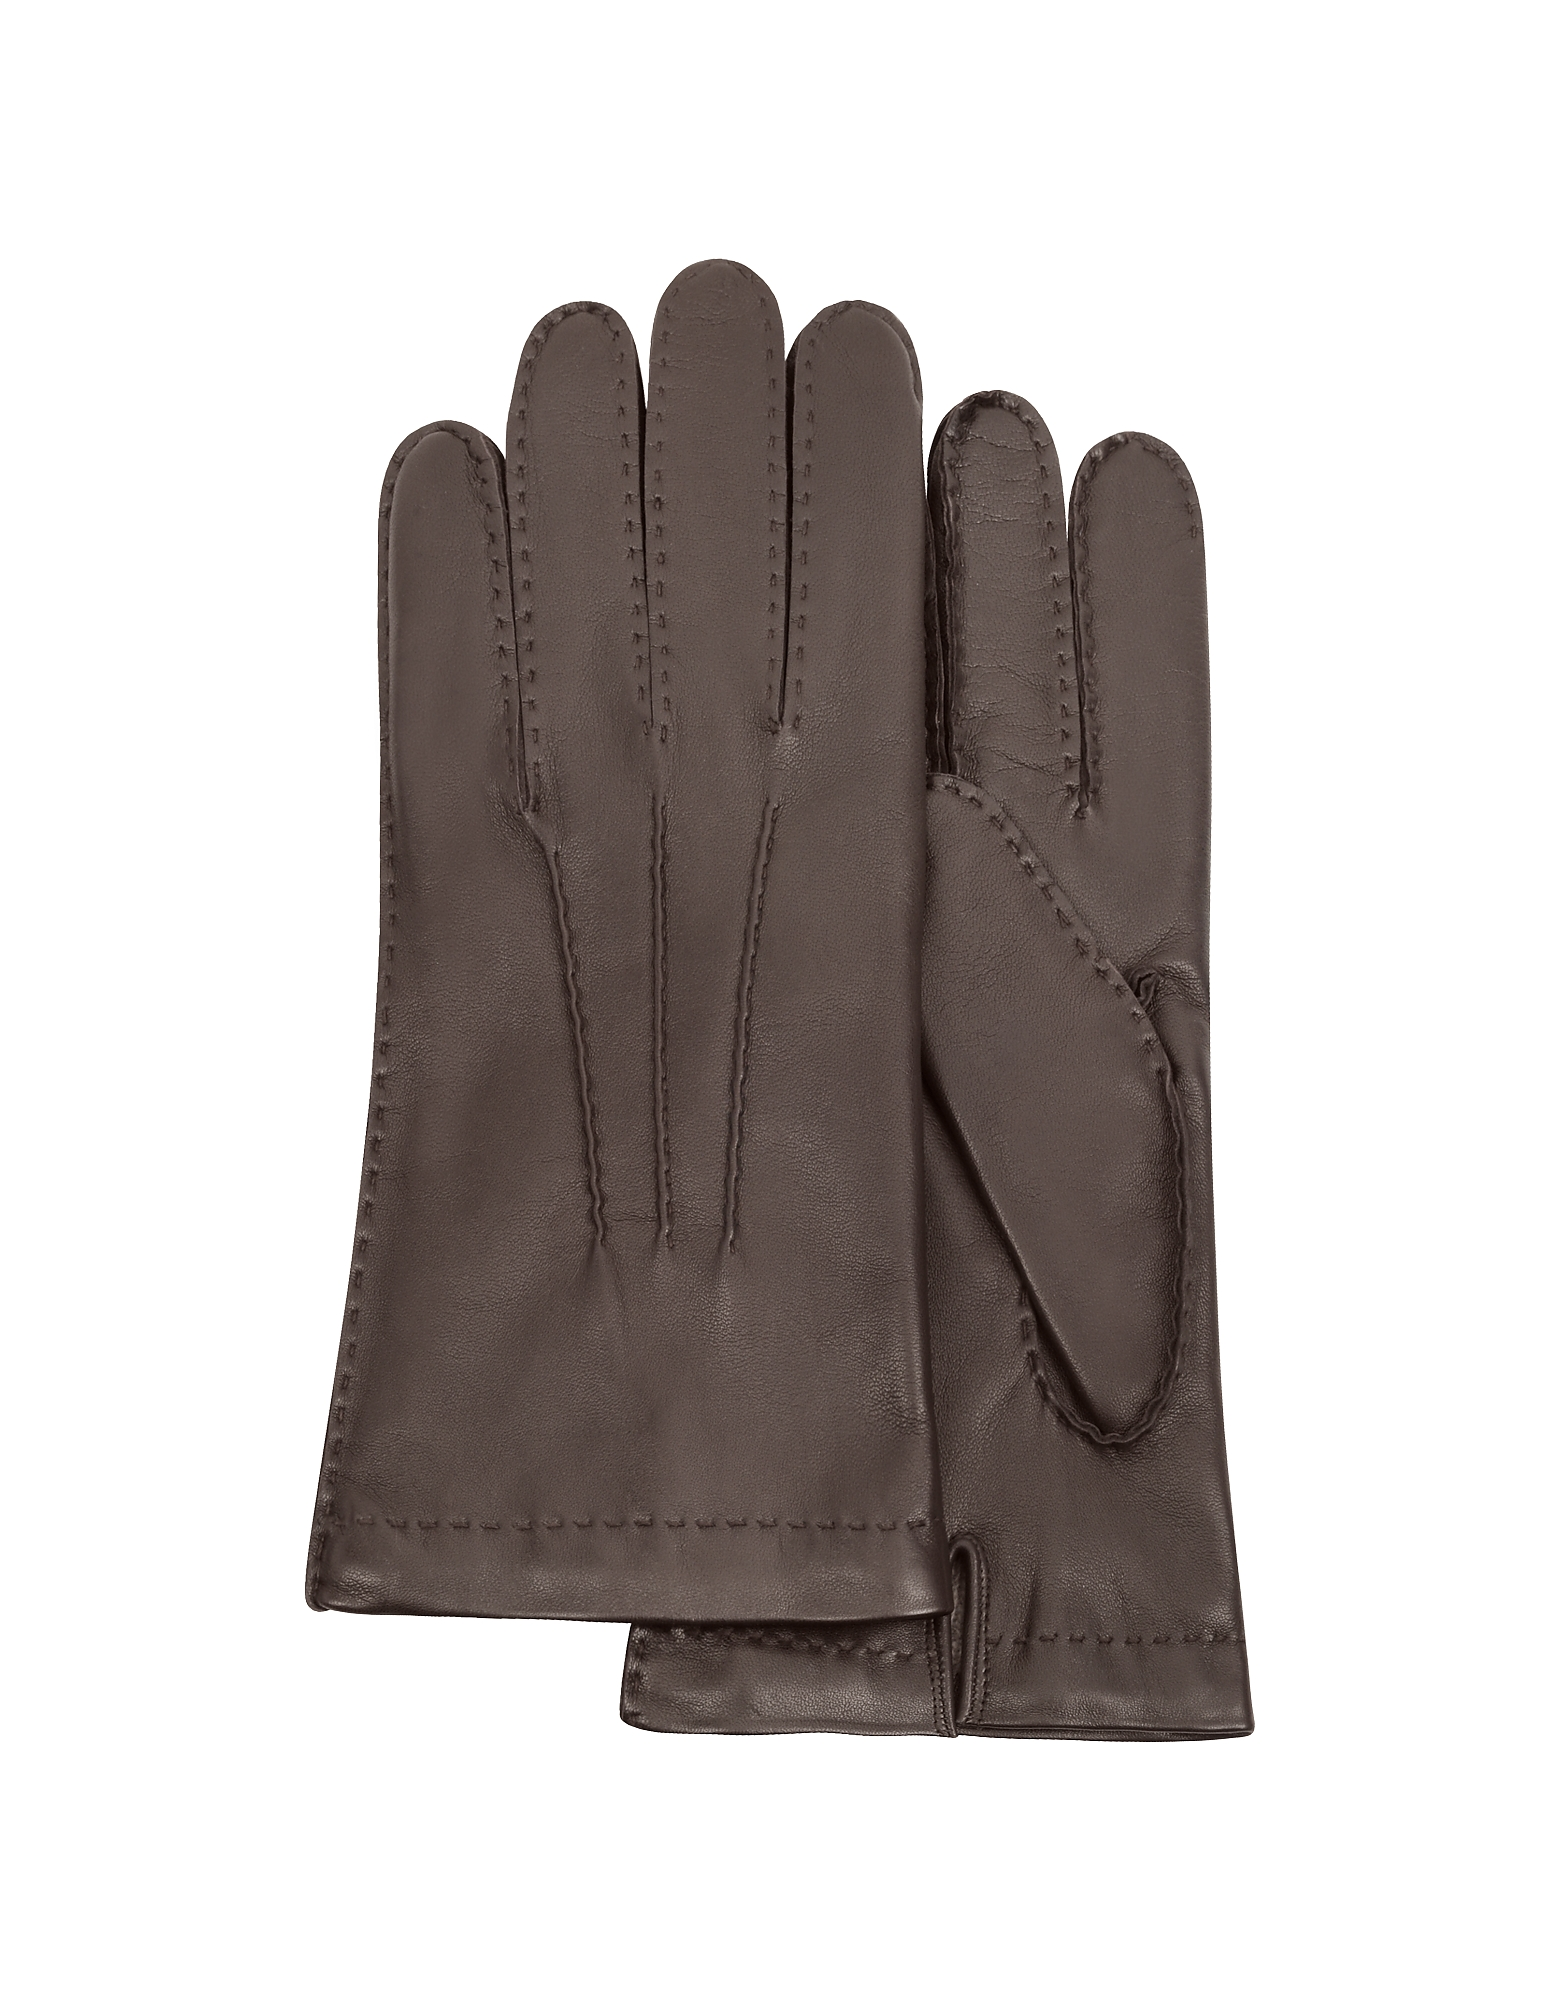 Forzieri Men's Gloves, Men's Cashmere Lined Dark Brown Italian Leather Gloves